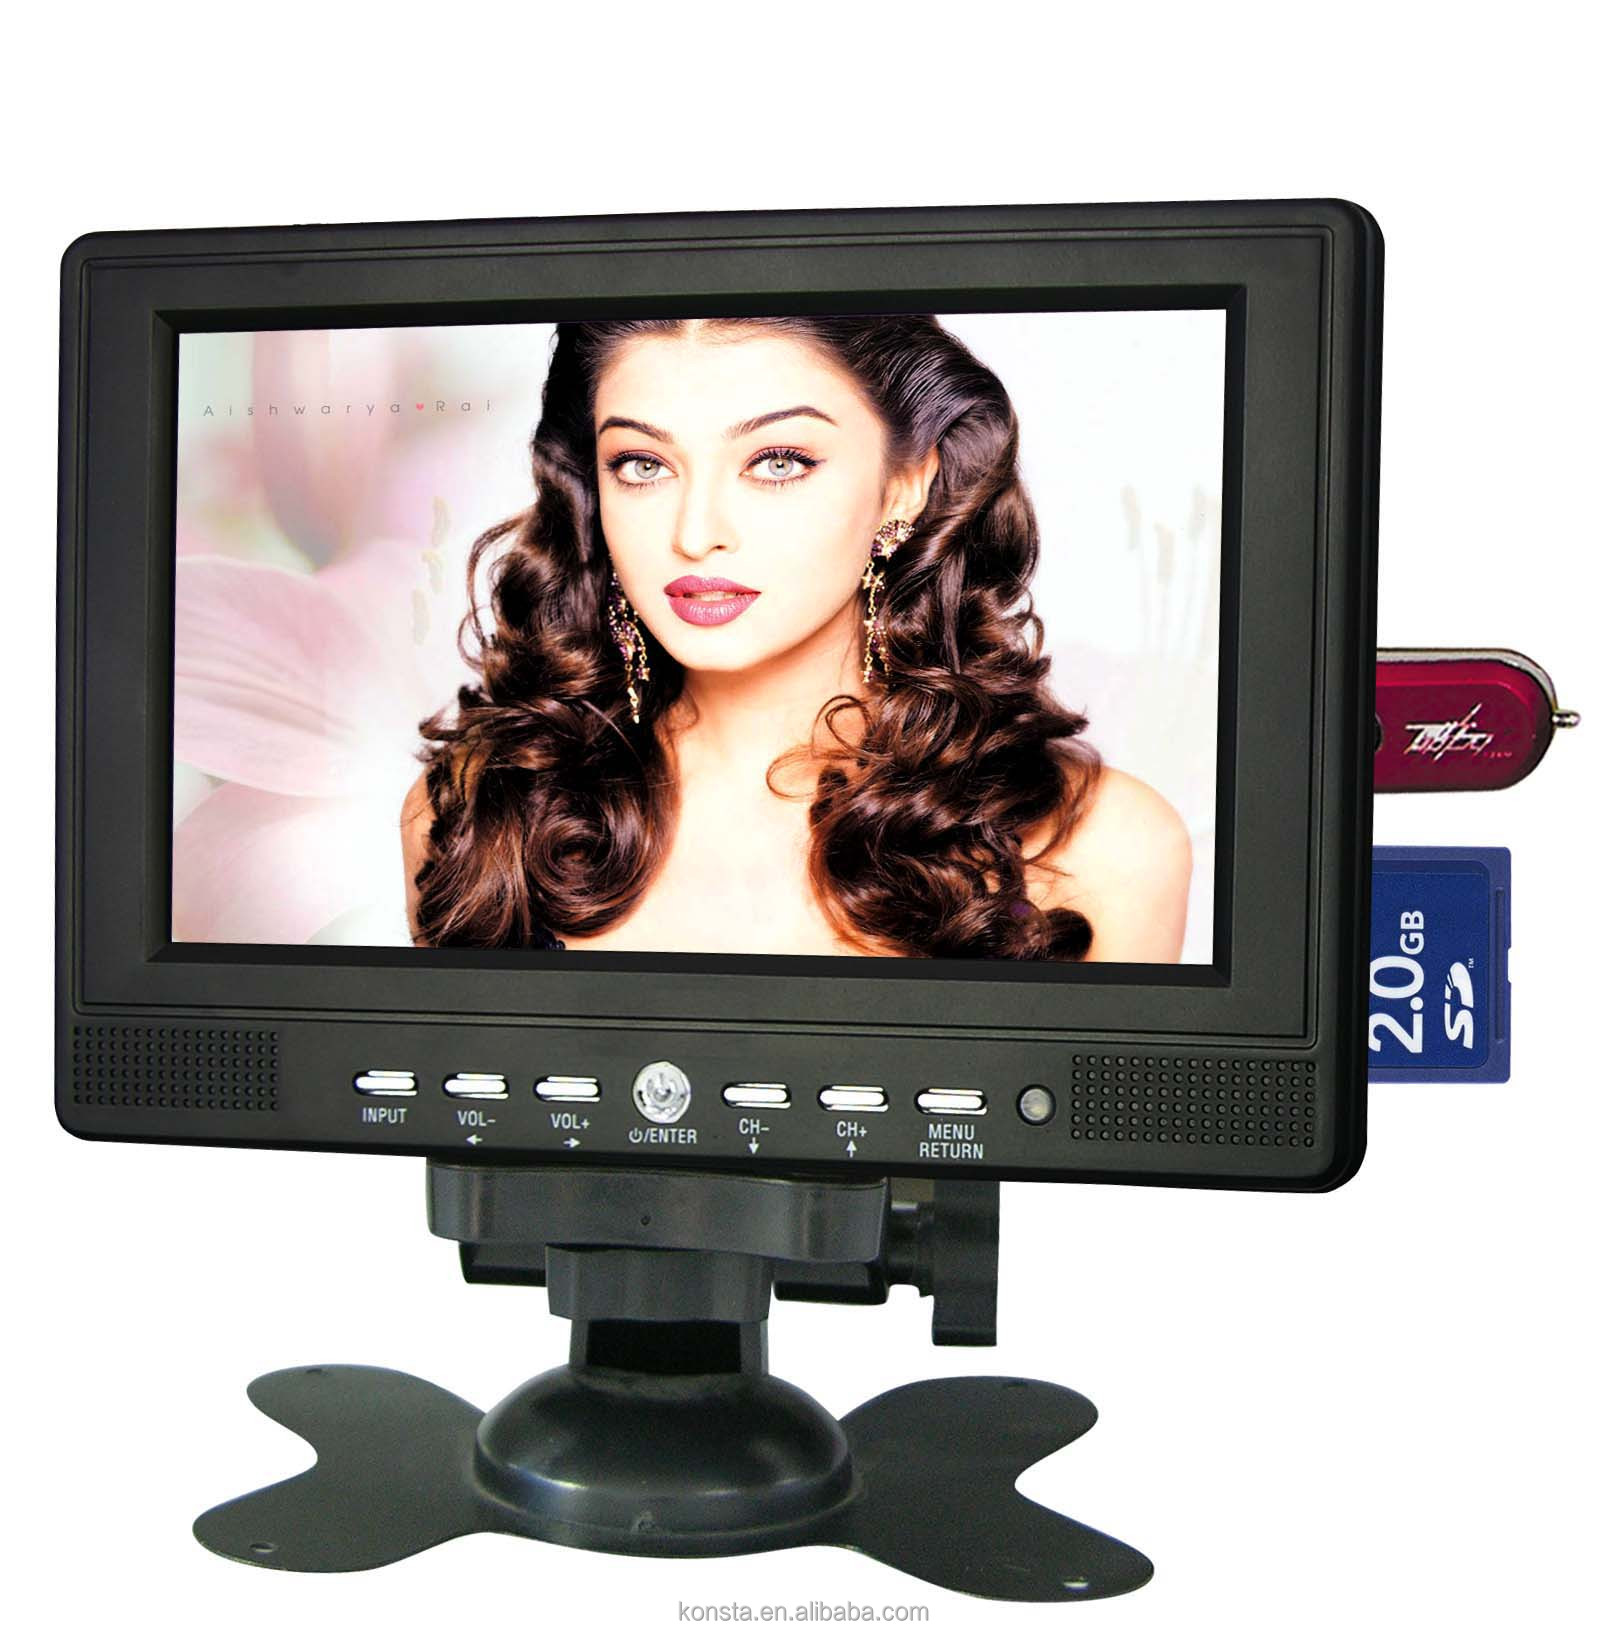 7 inch Color TFT-LCD Portable Multimedia <strong>TV</strong> with USB SD Card